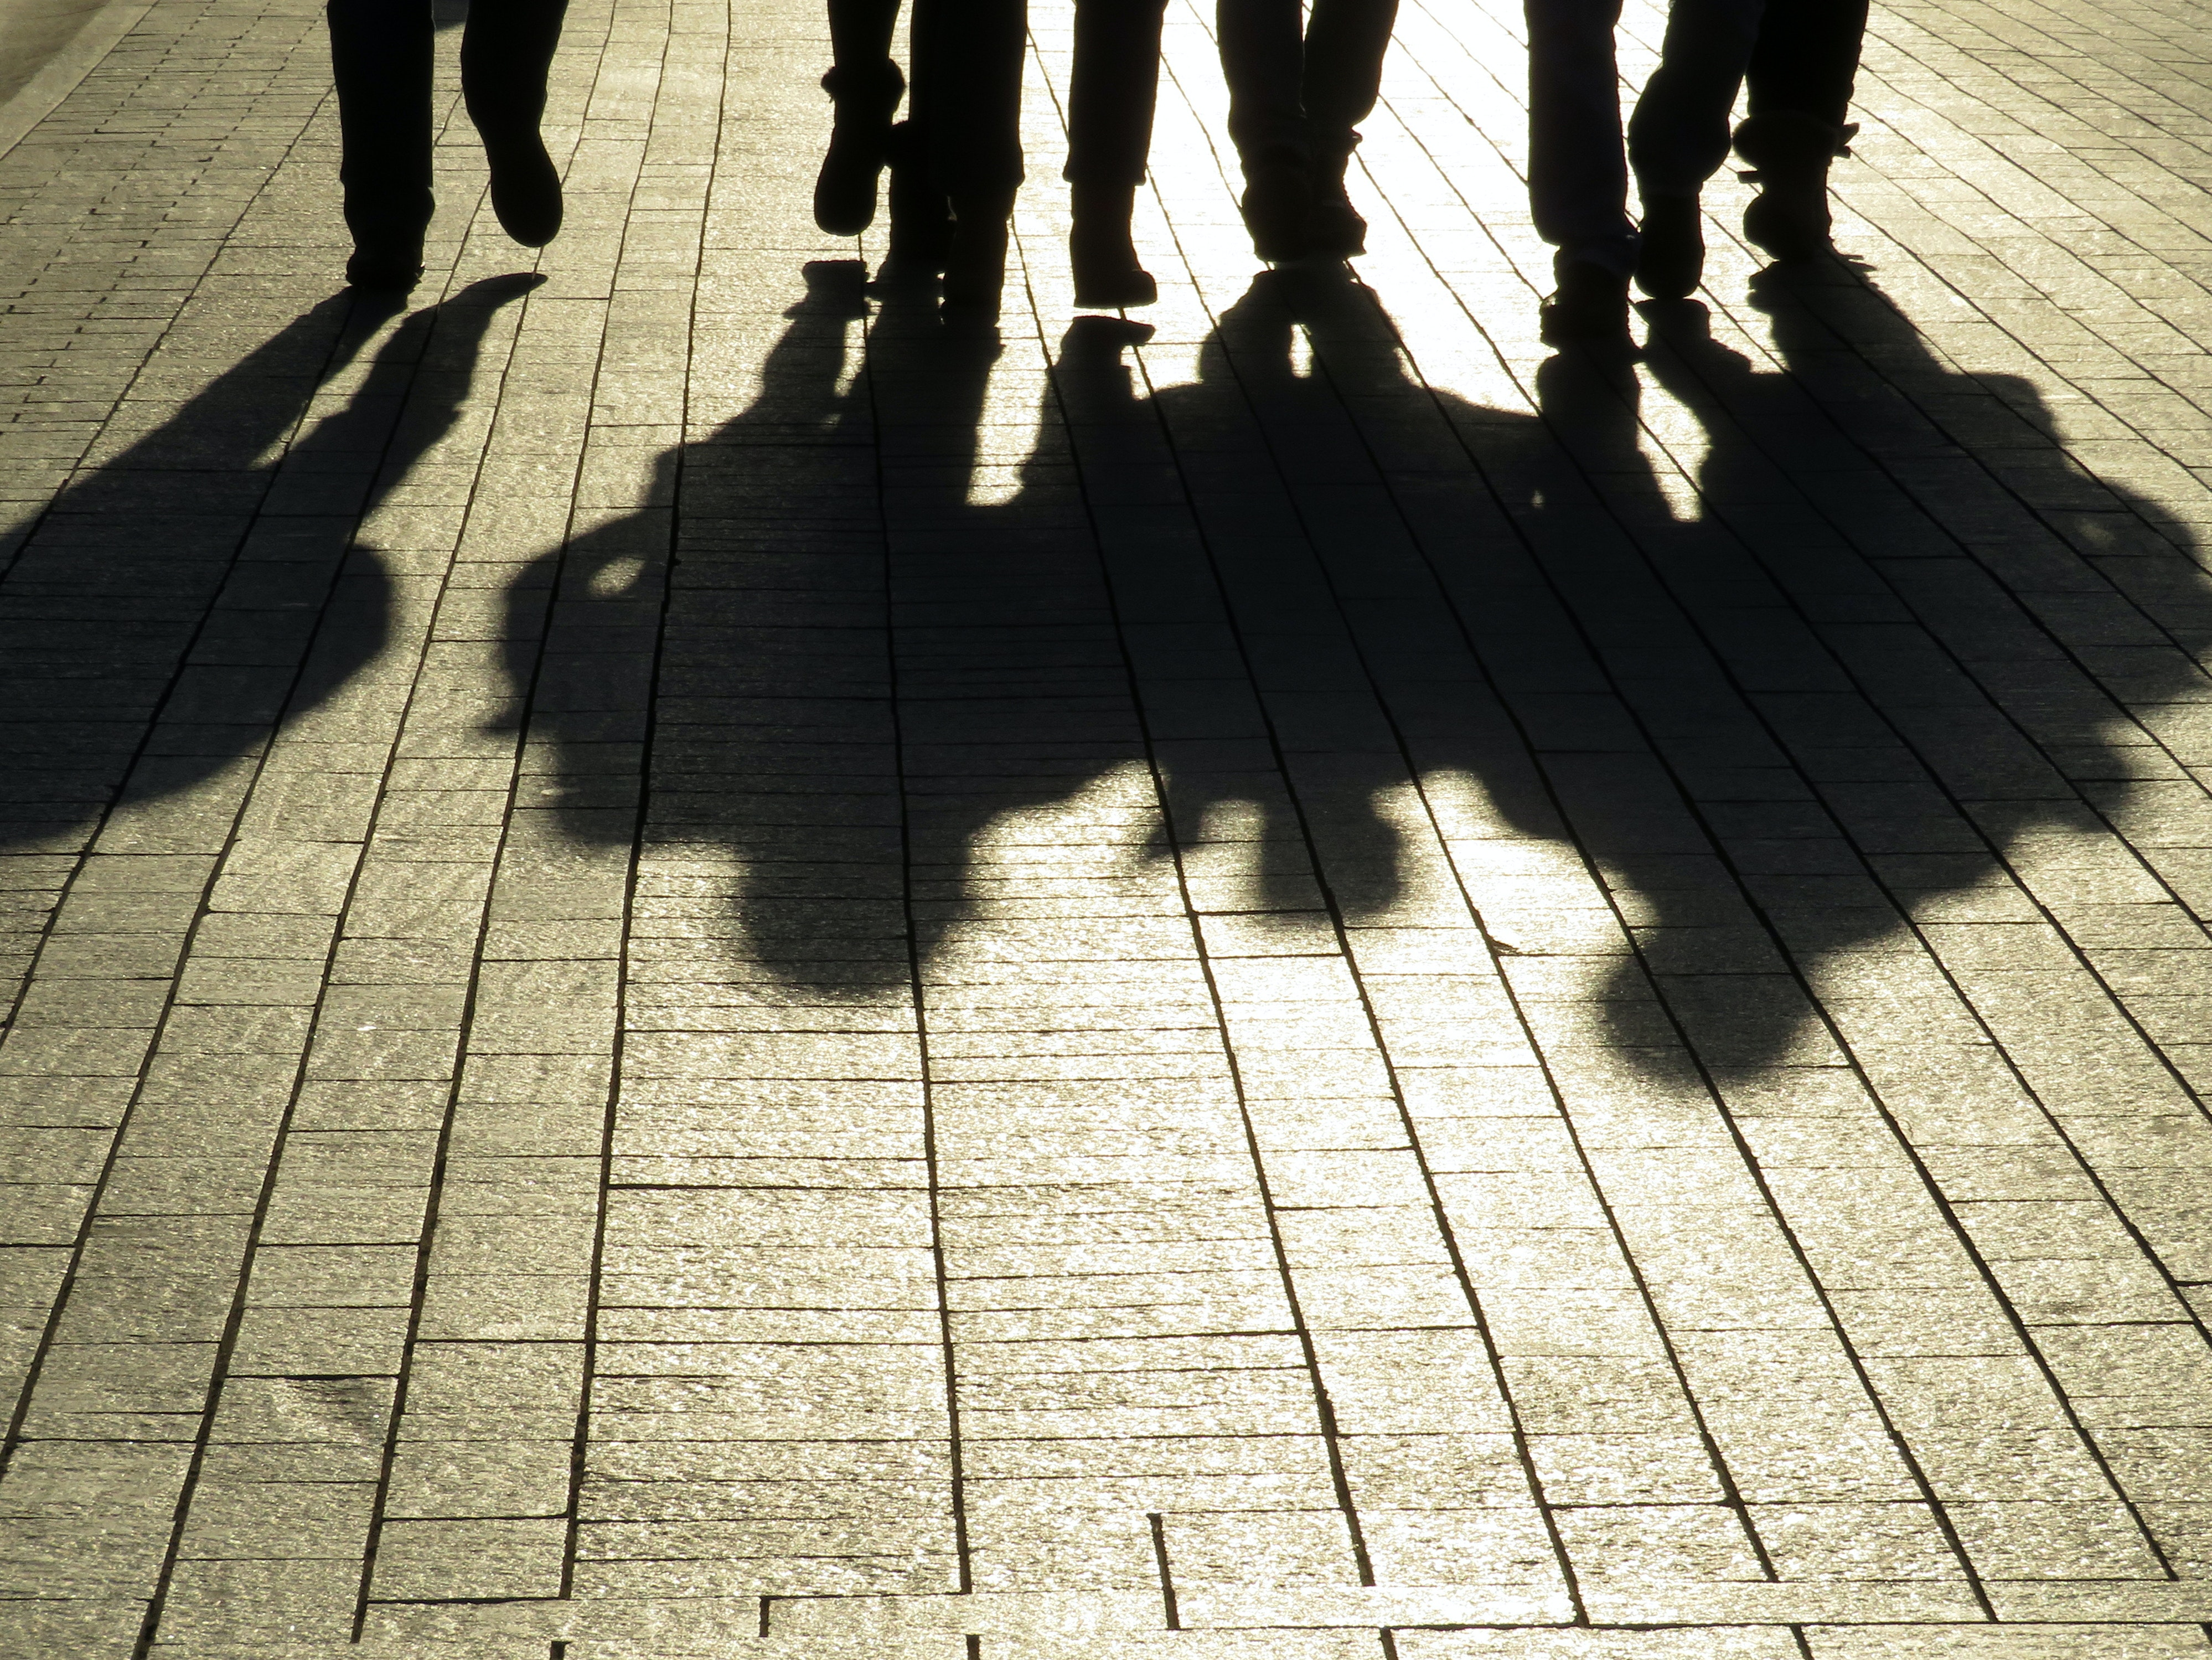 Gang culture appeals to disenfranchised young people – but 'social mixing' offers a way out